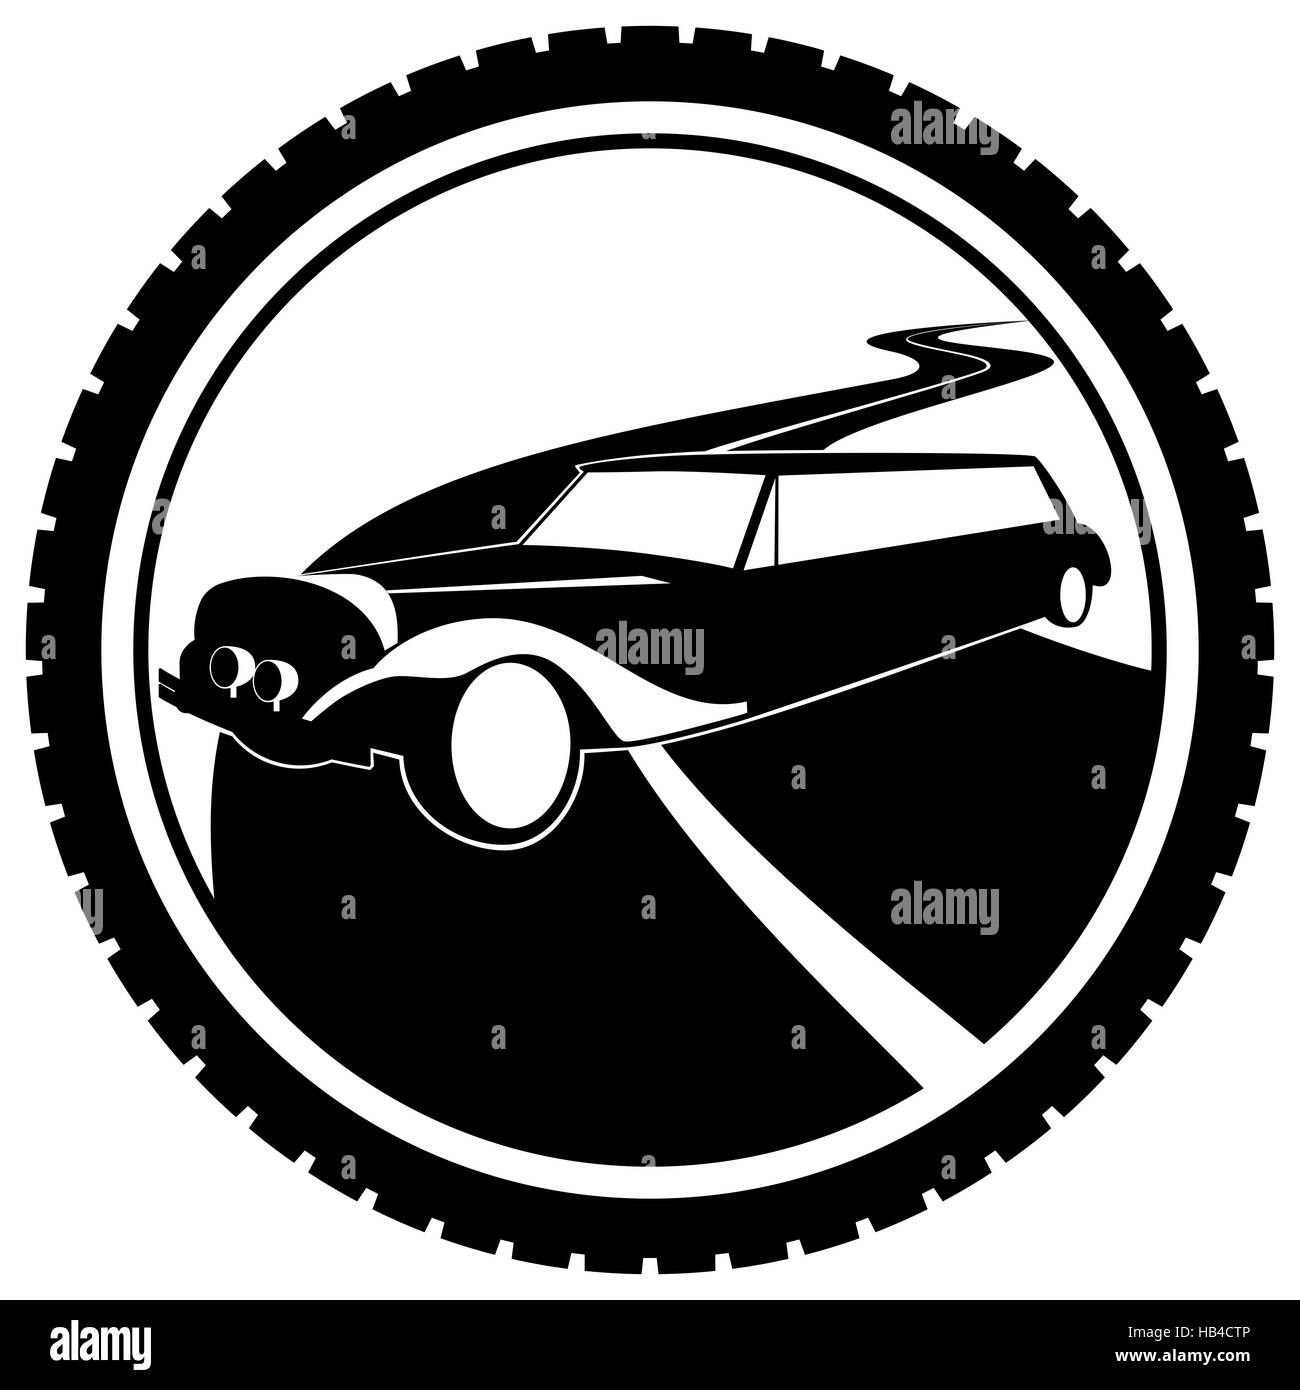 passenger car black and white stock photos images alamy Tesla Model S Convertible icon a passenger car the illustration on a white background stock image